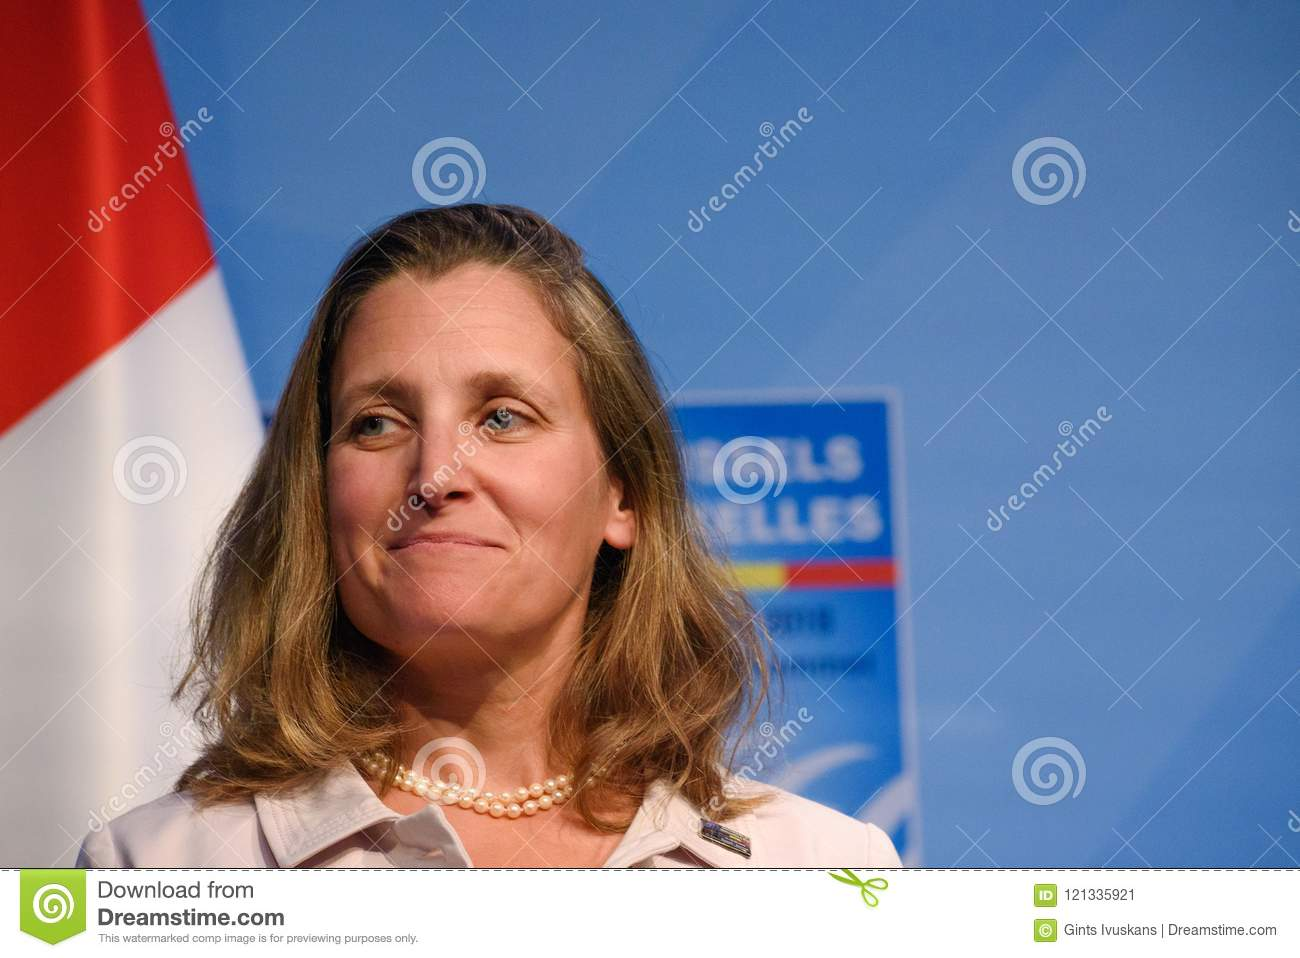 Chrystia Freeland, Minister of Foreign Affairs of Canada, Justin Trudeau, Prime Minister of Canada and Harjit Singh Sajjan